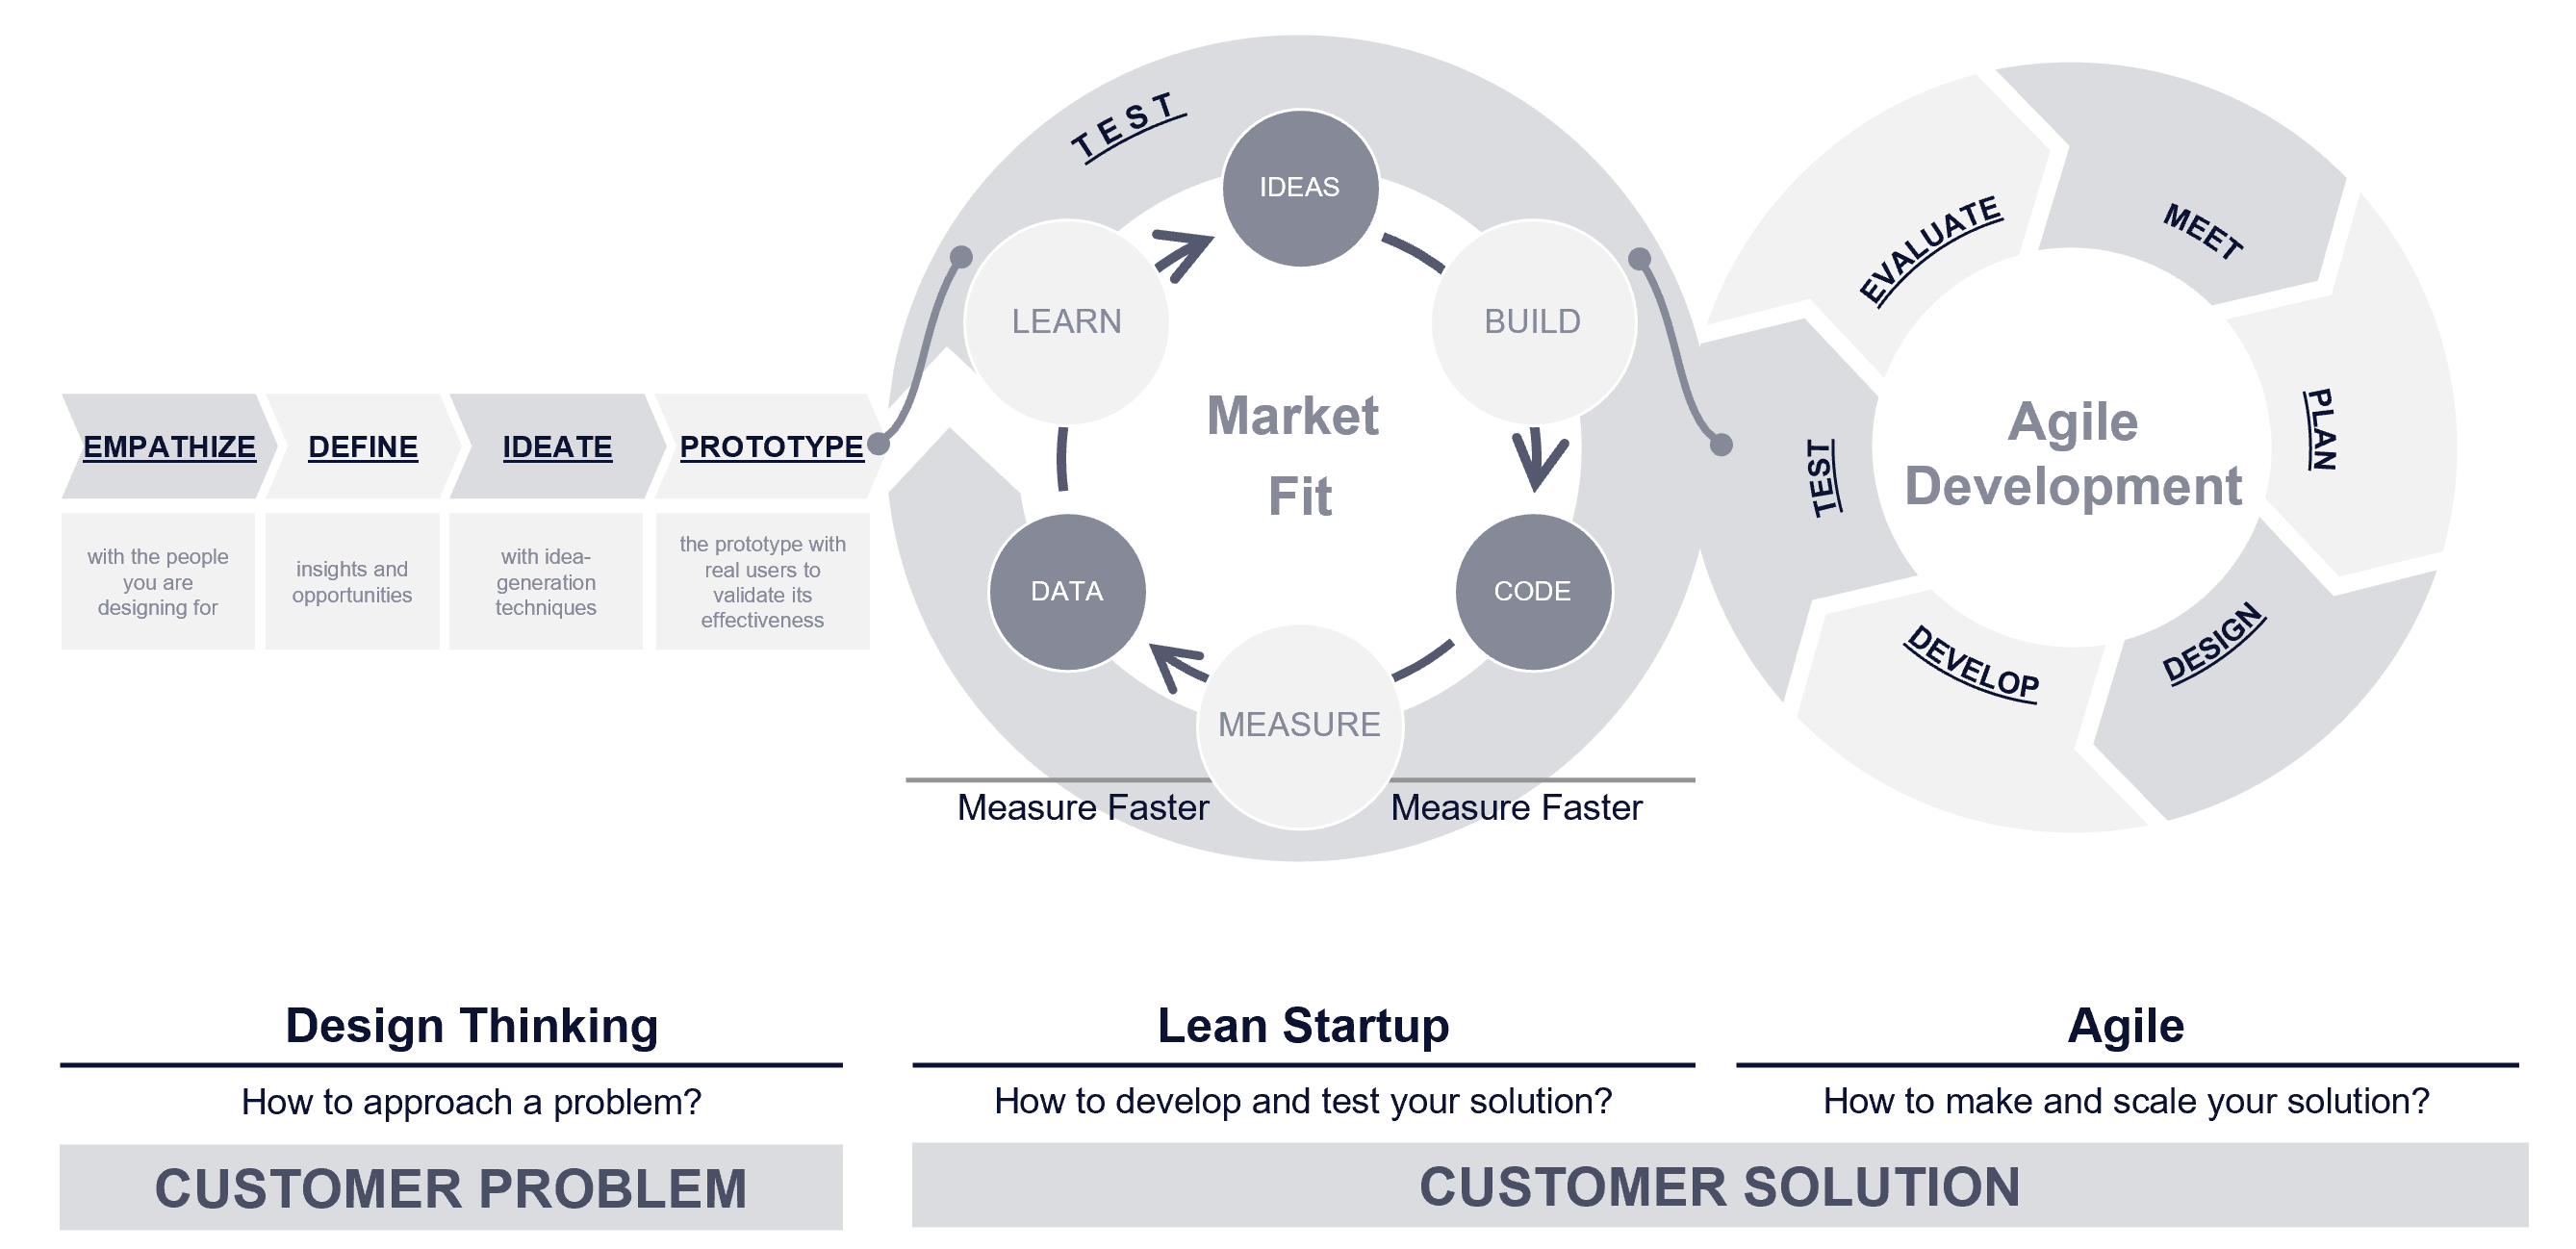 How Design Thinking Lean Startip and Agile Methodology relate